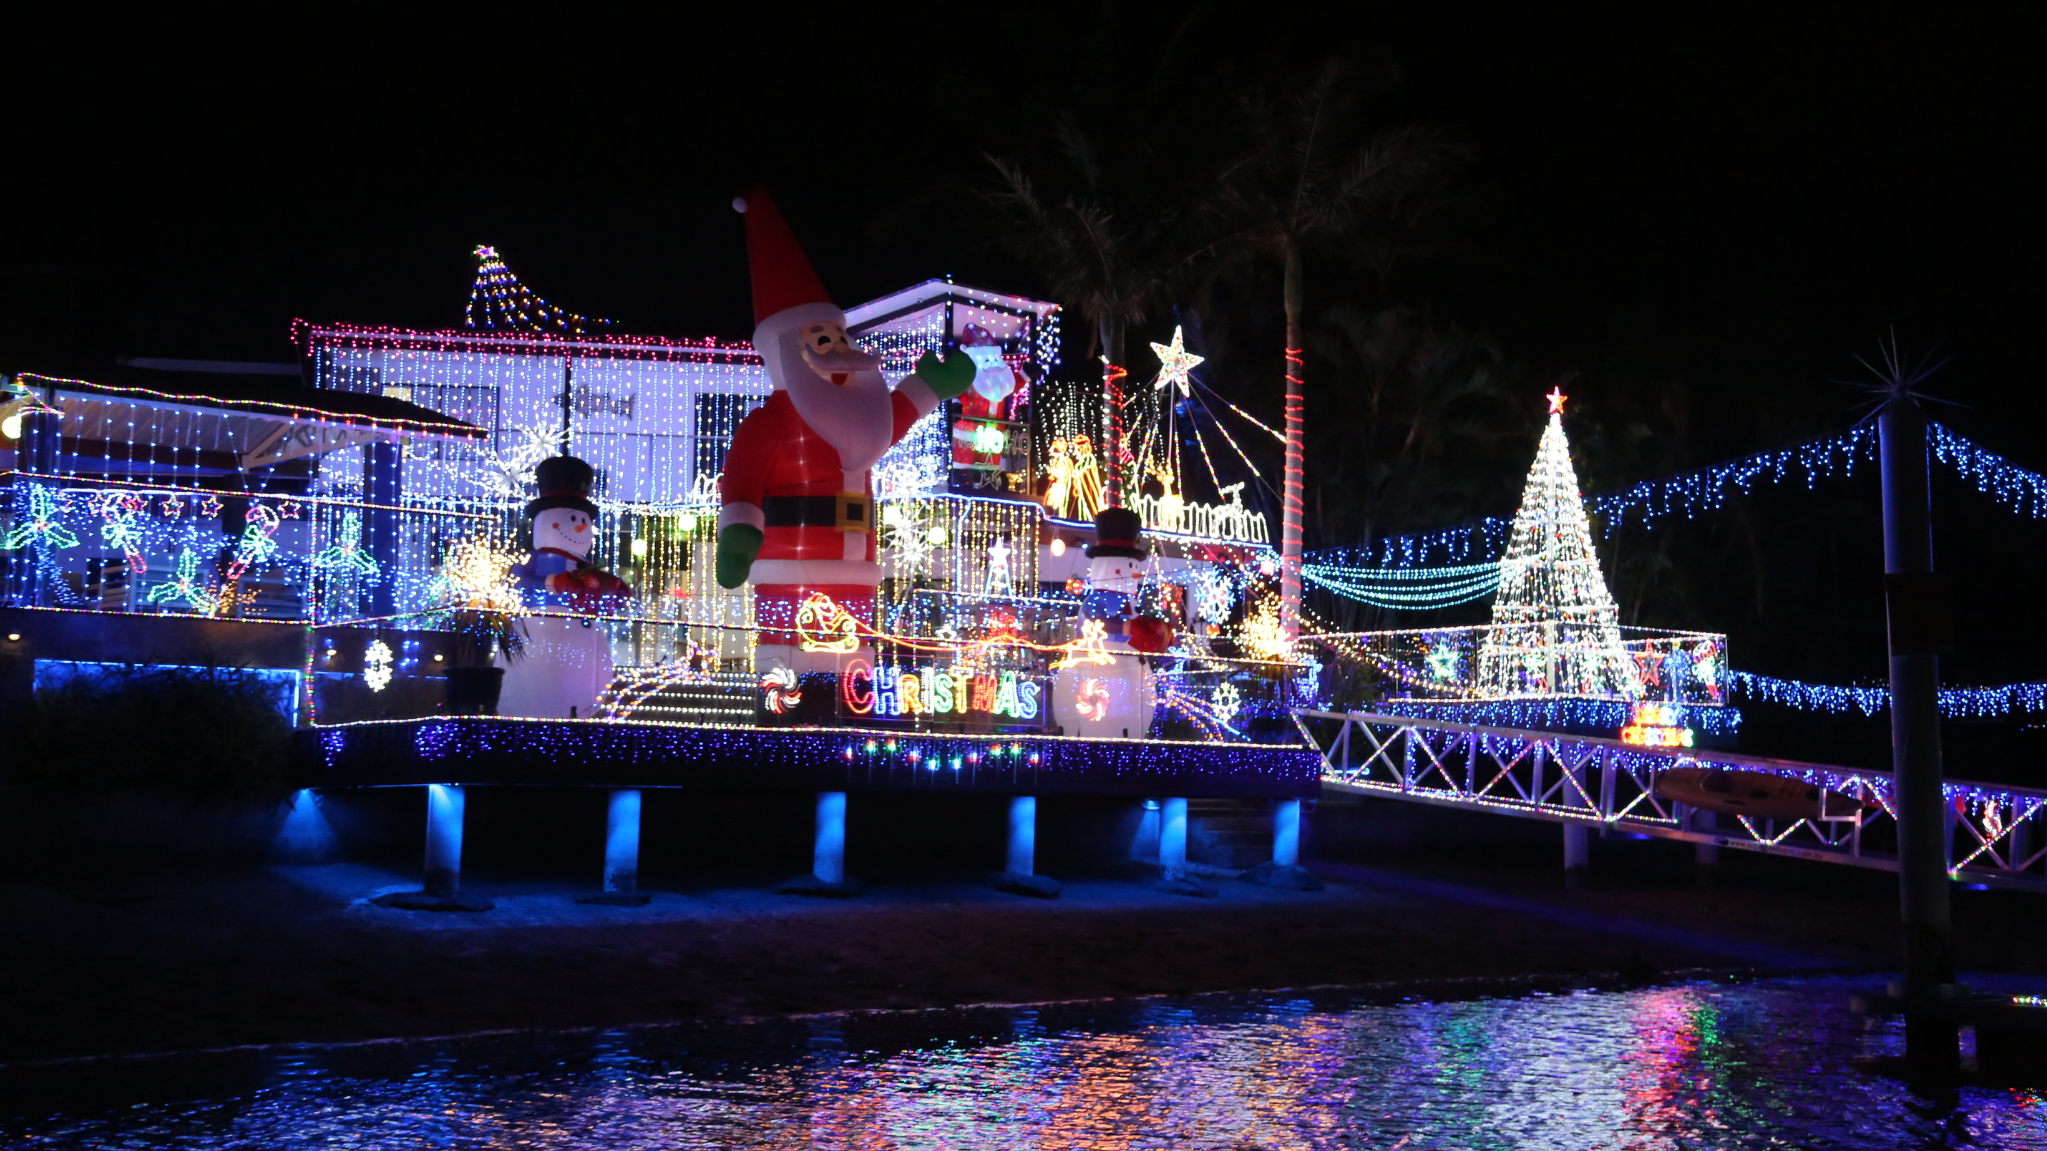 Christmas Lights Competition 2020 – ARE YOU IN?